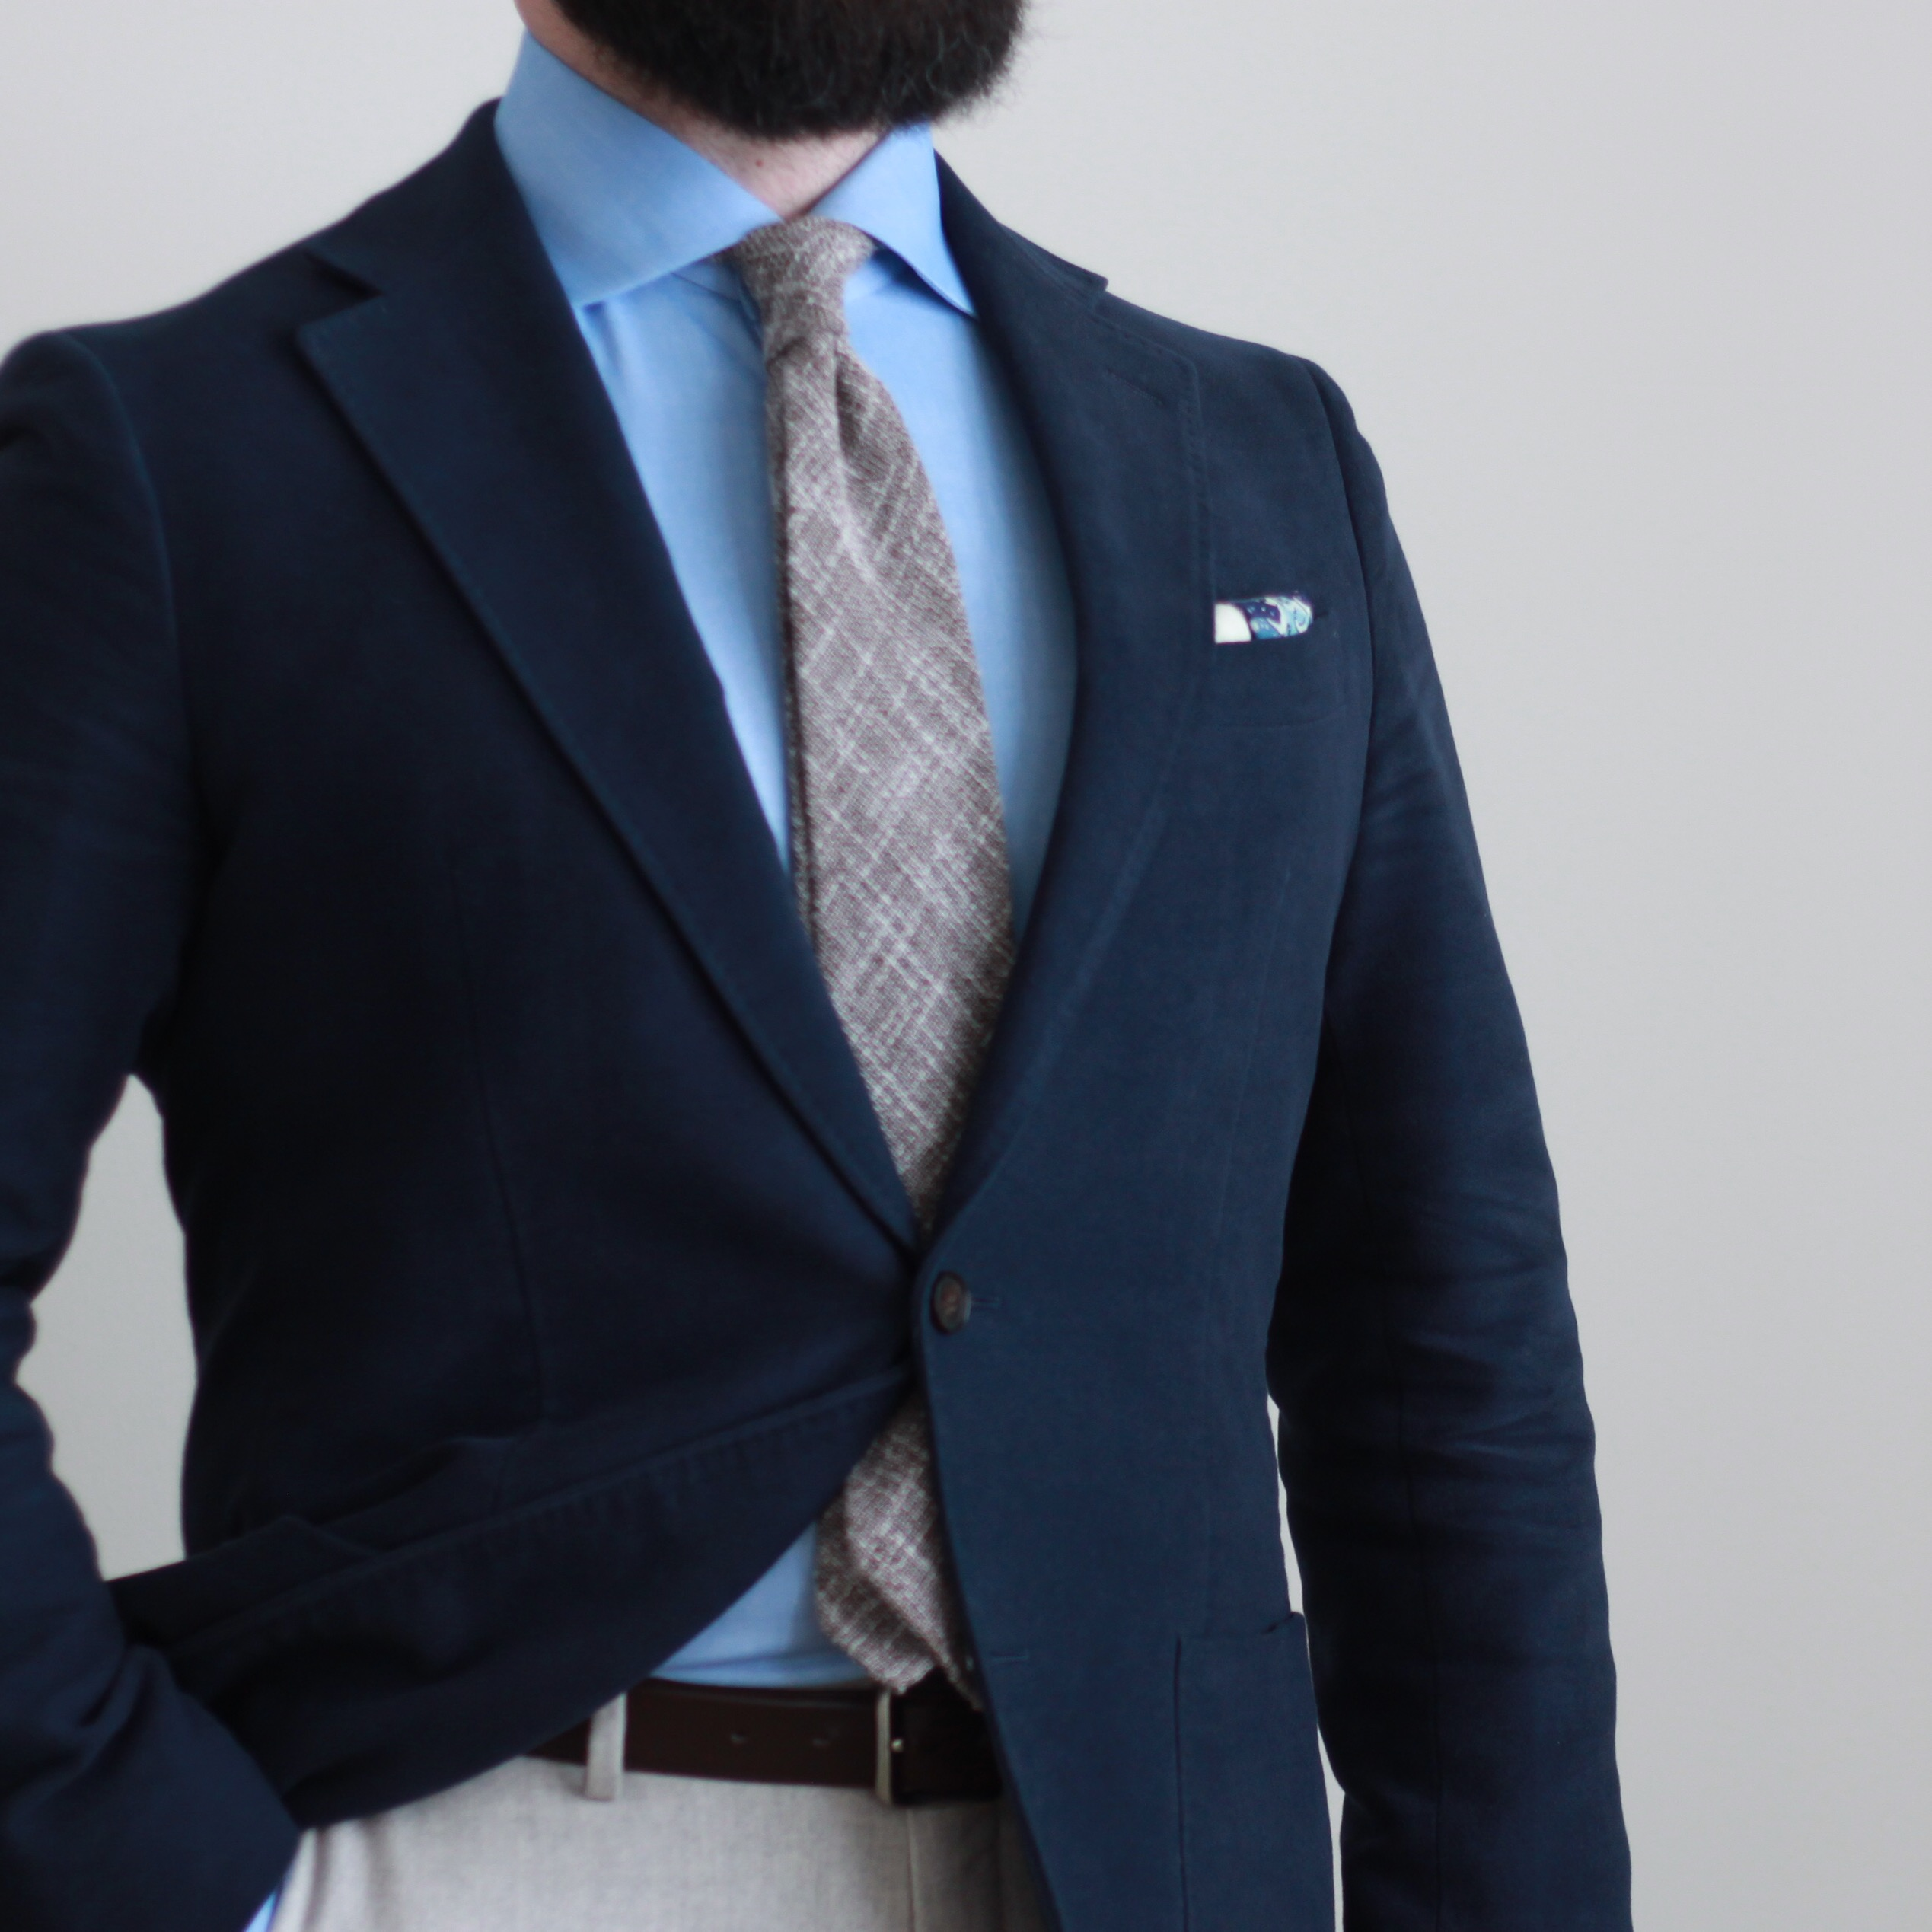 moleskin, navy, odd jacket, sport coat, kent wang, spier mackay, great wave